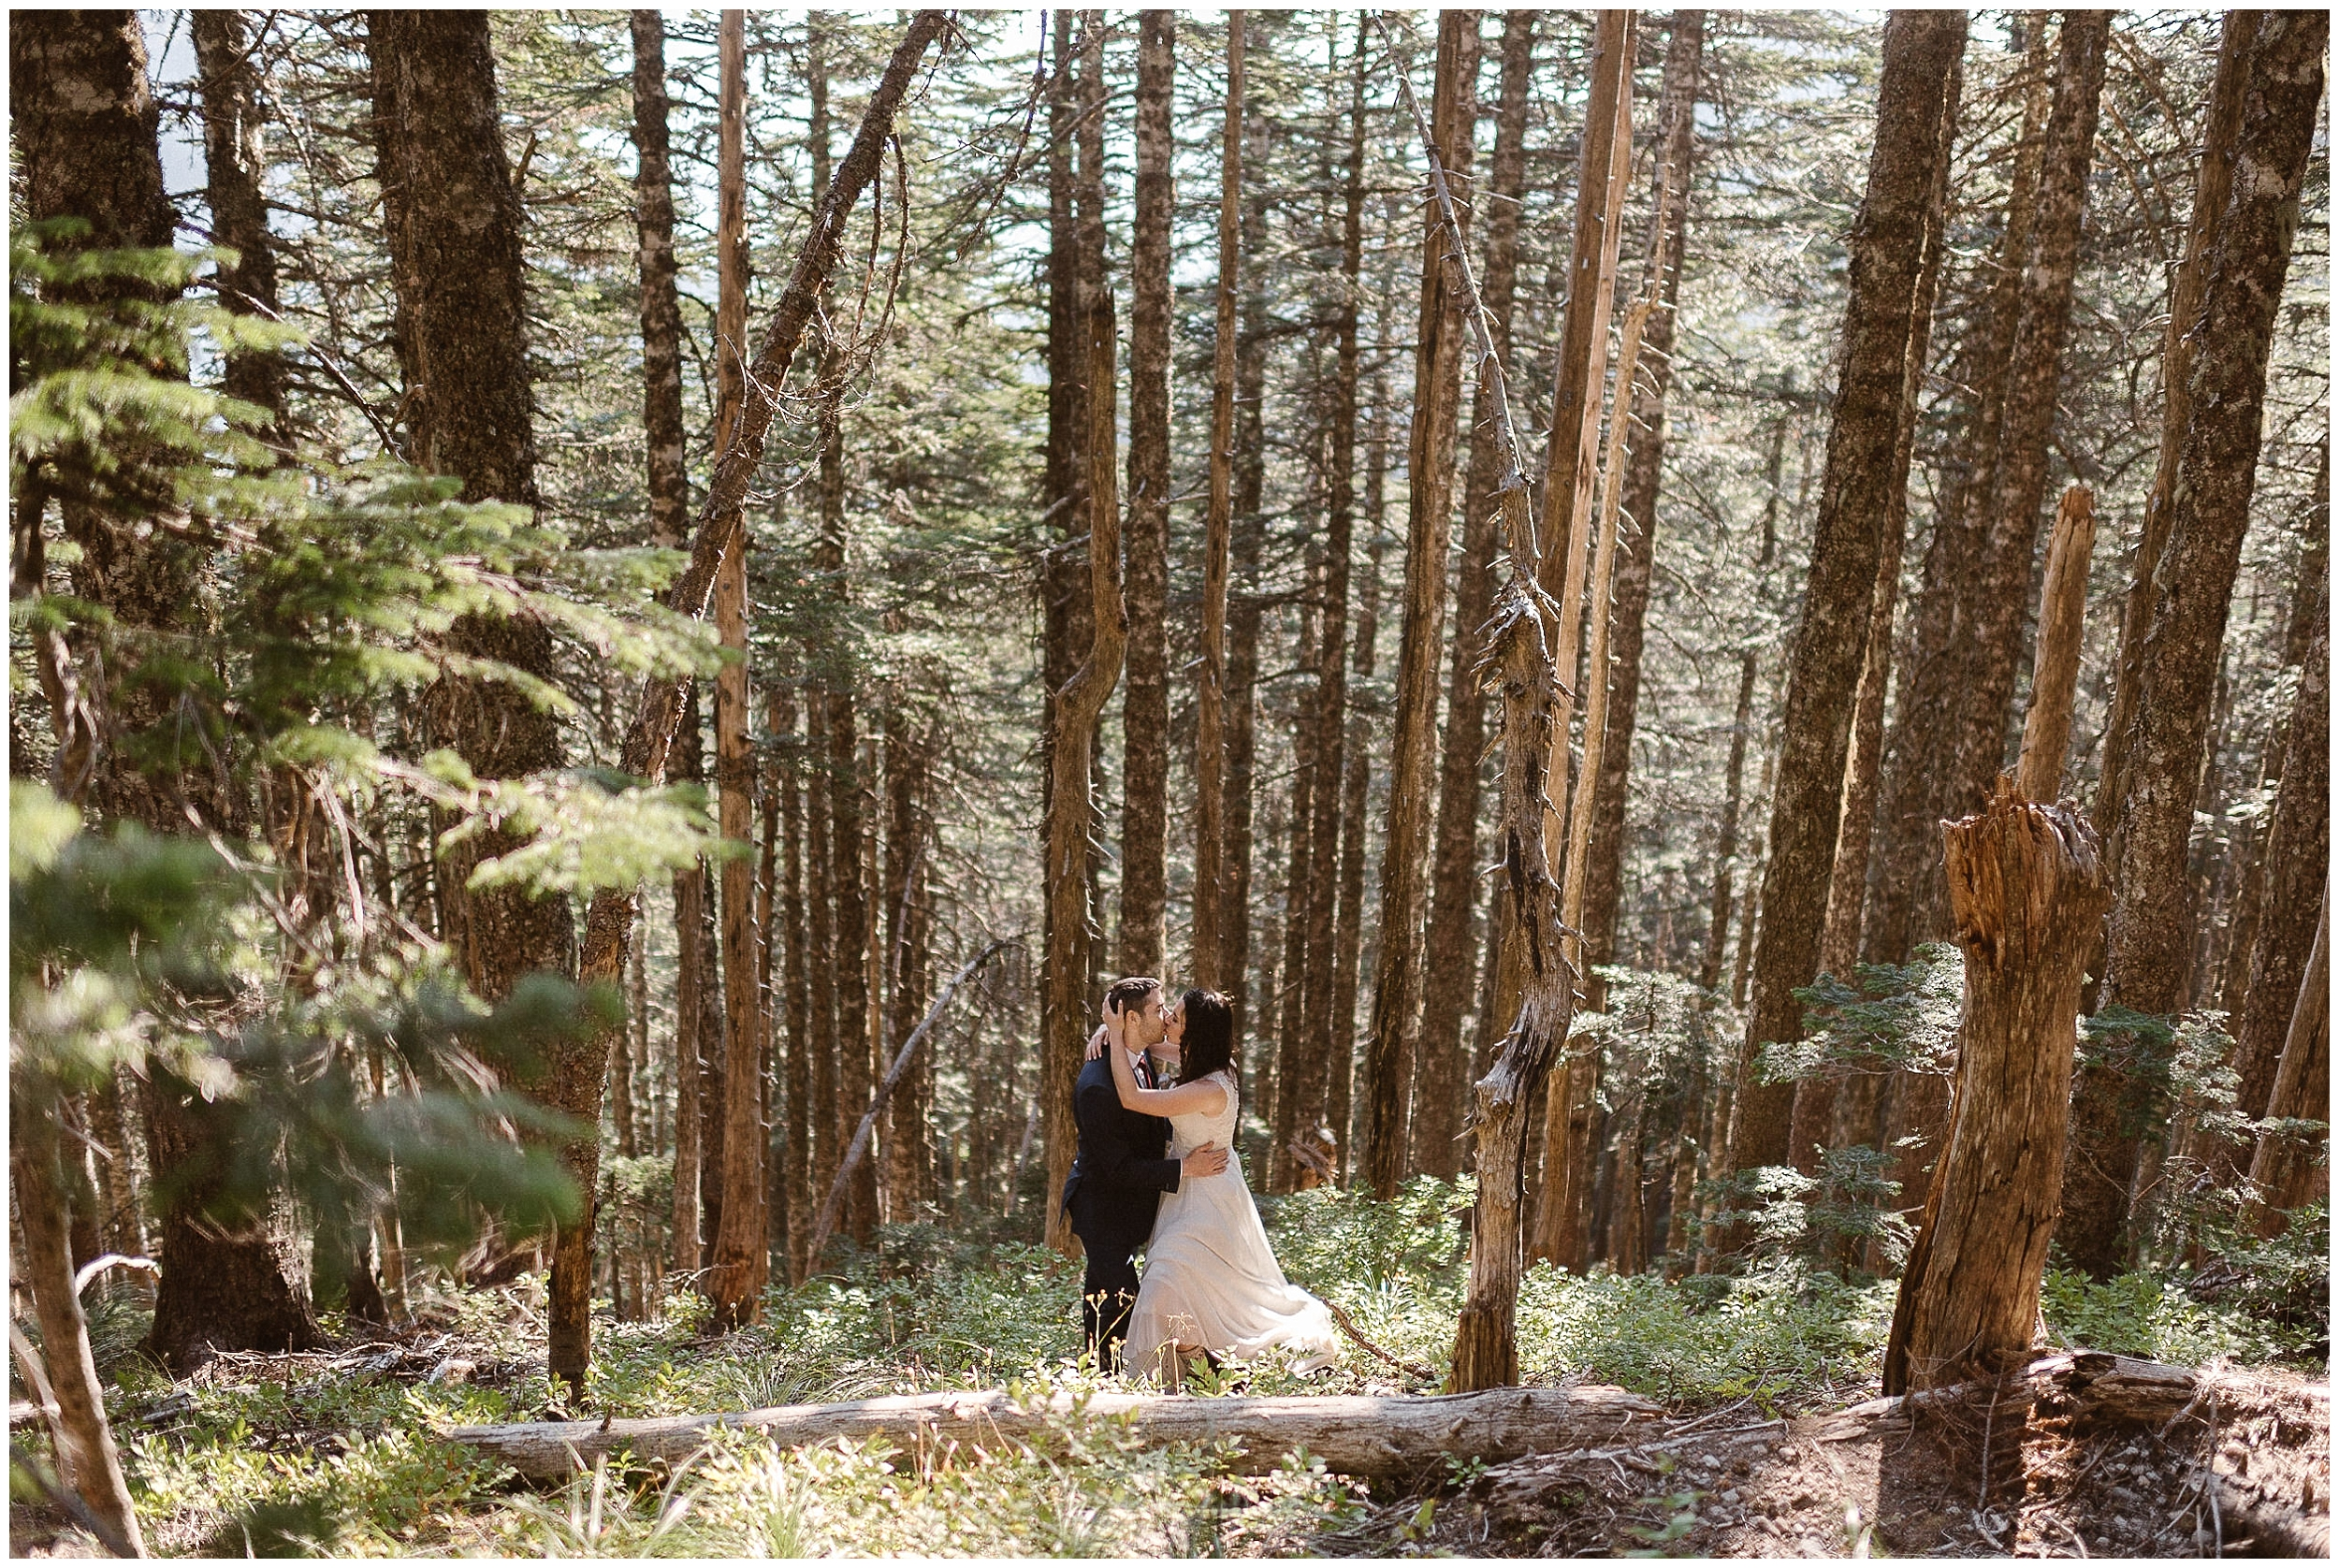 Lauryn and David embrace and kiss, surrounded by a thicket of trees in the Washington wilderness. These elopement photos were captured by elopement wedding photographer Adventure Instead.